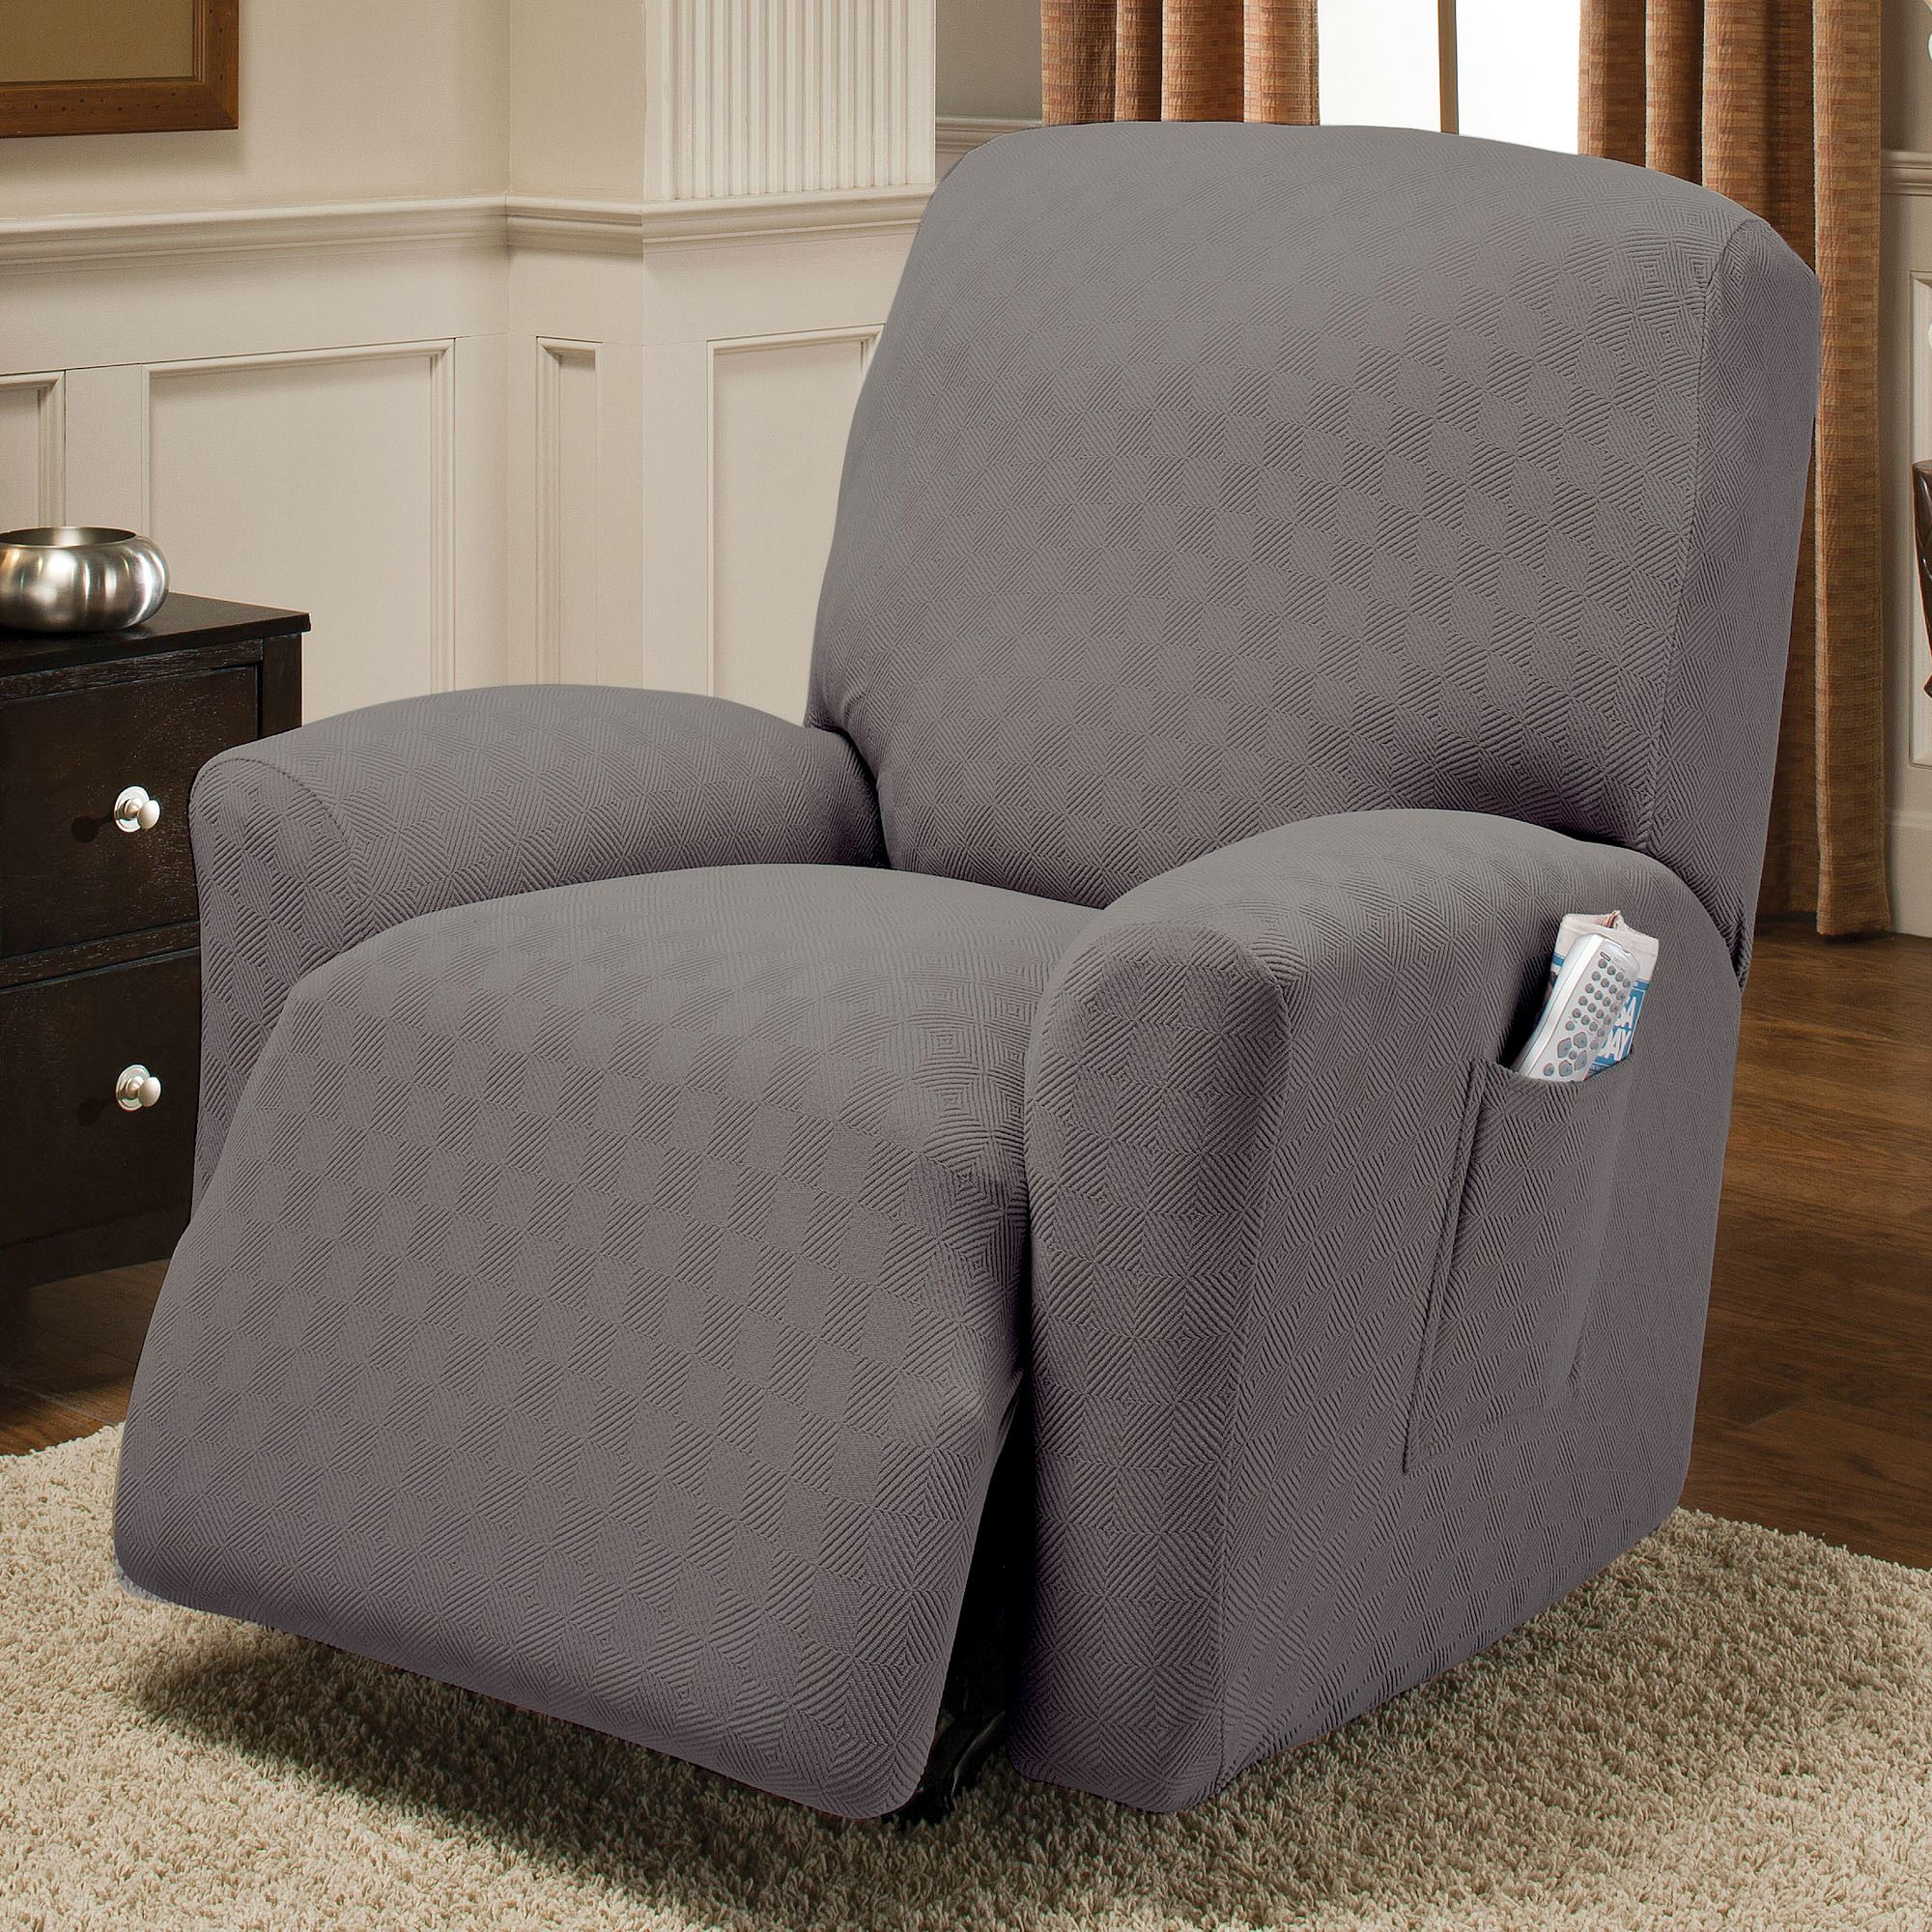 recliner chair covers grey office fabric newport stretch slipcovers slipcover jumbo